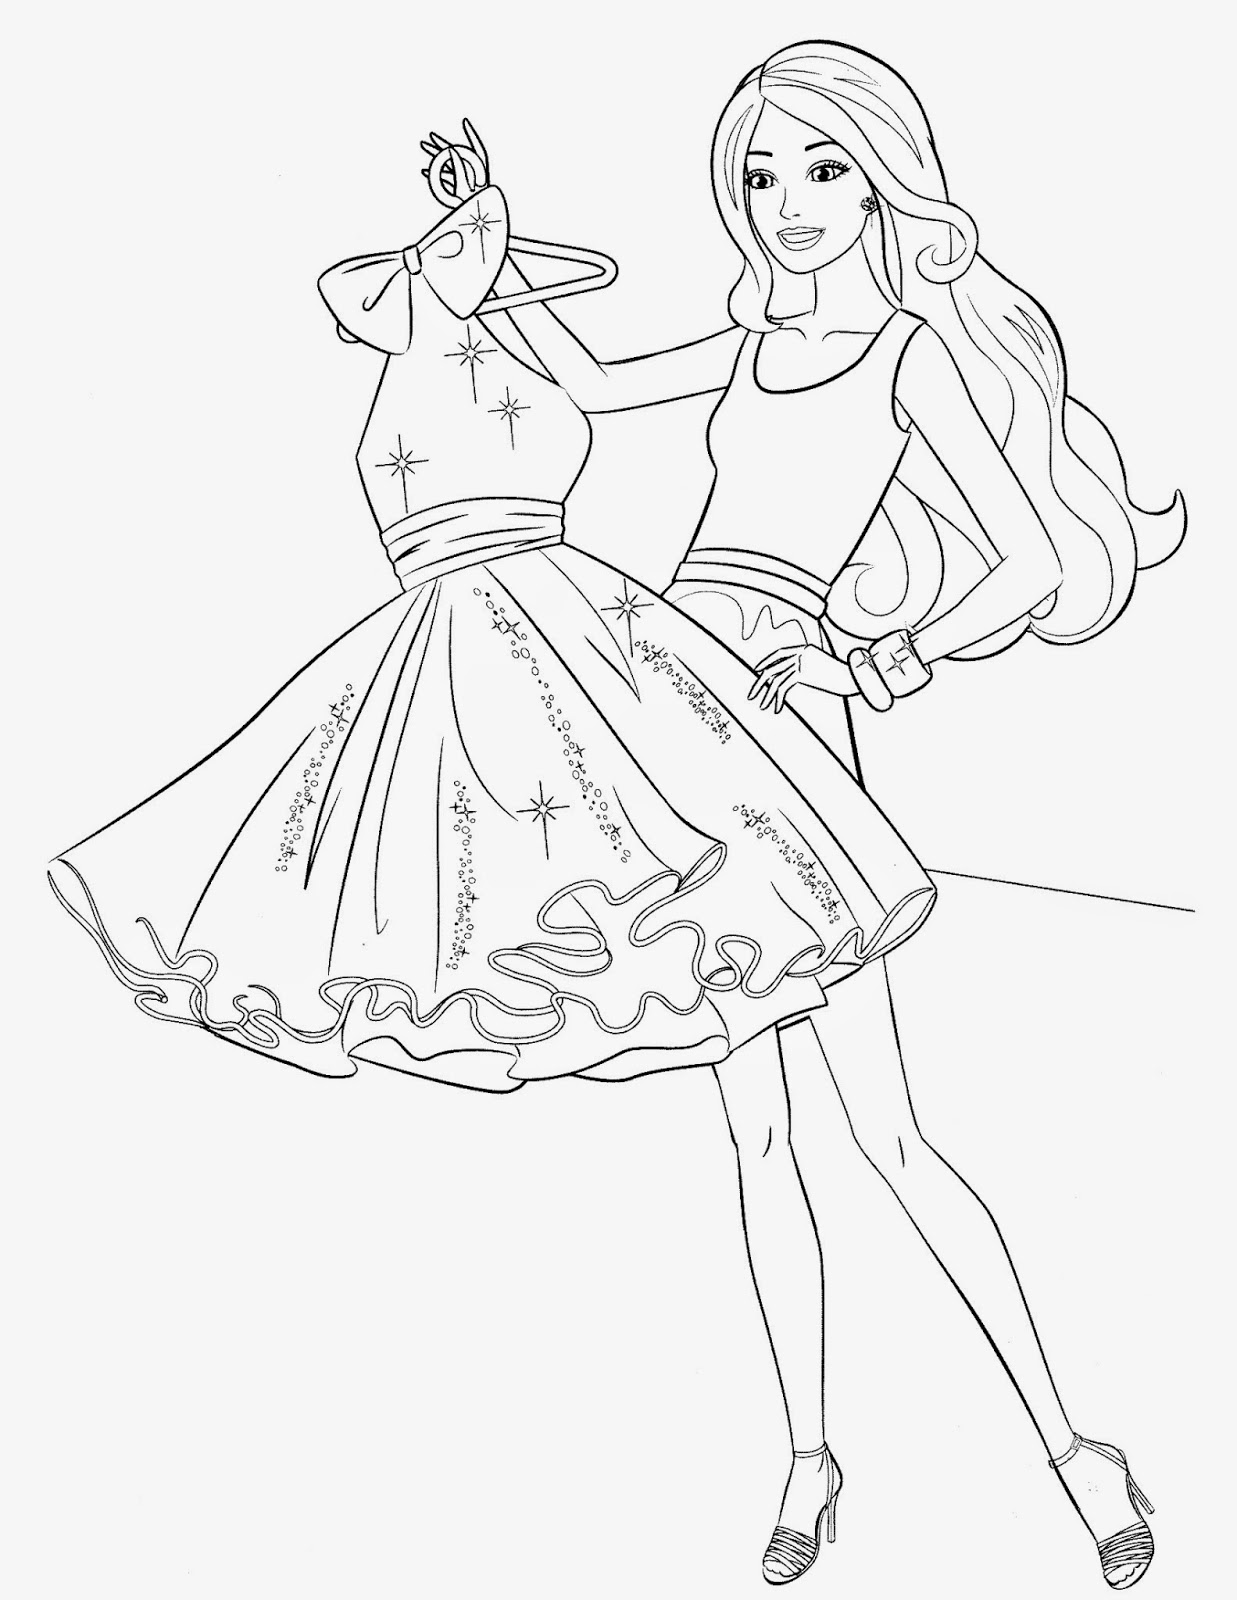 barbie printables barbie coloring pages for girls toddlers adults print barbie printables